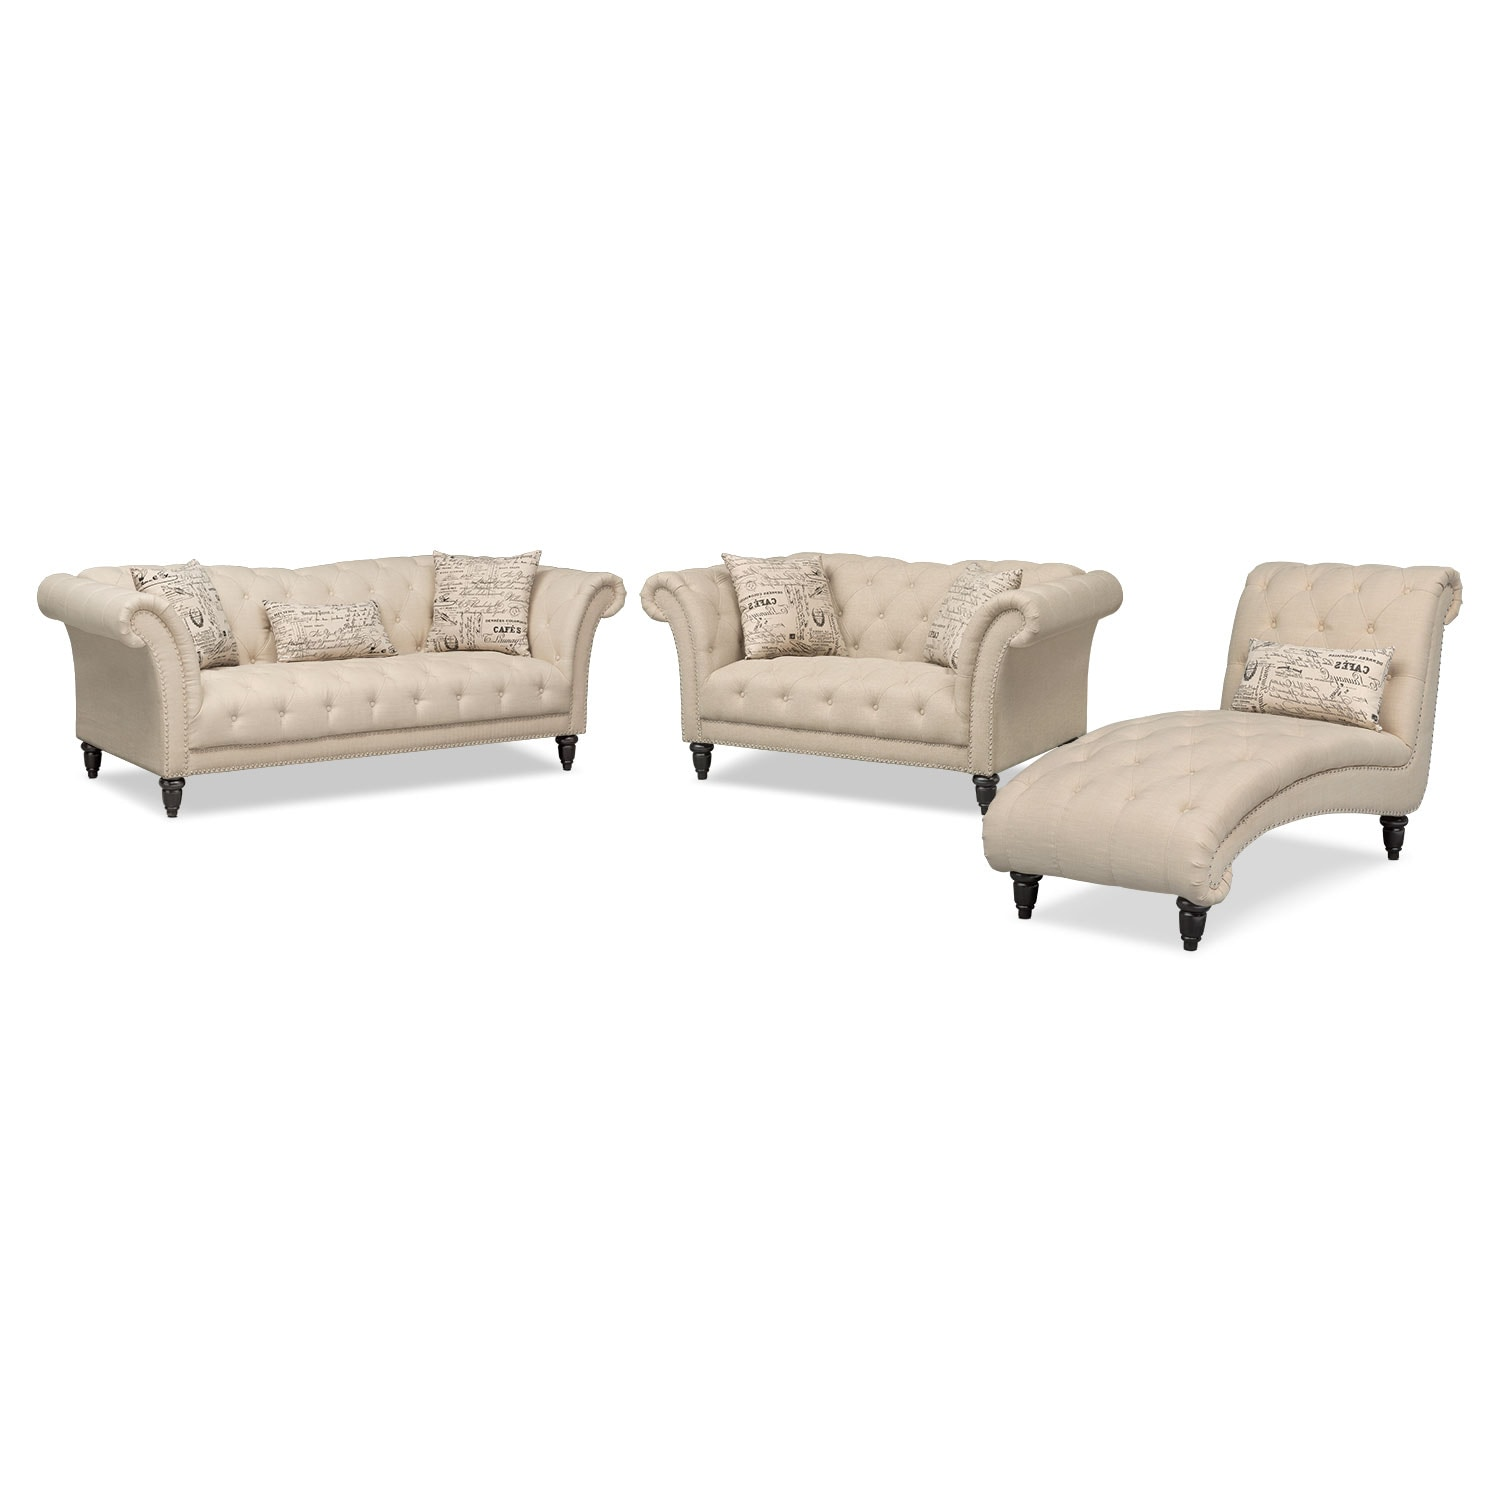 Marisol Sofa, Loveseat And Chaise Set   Beige